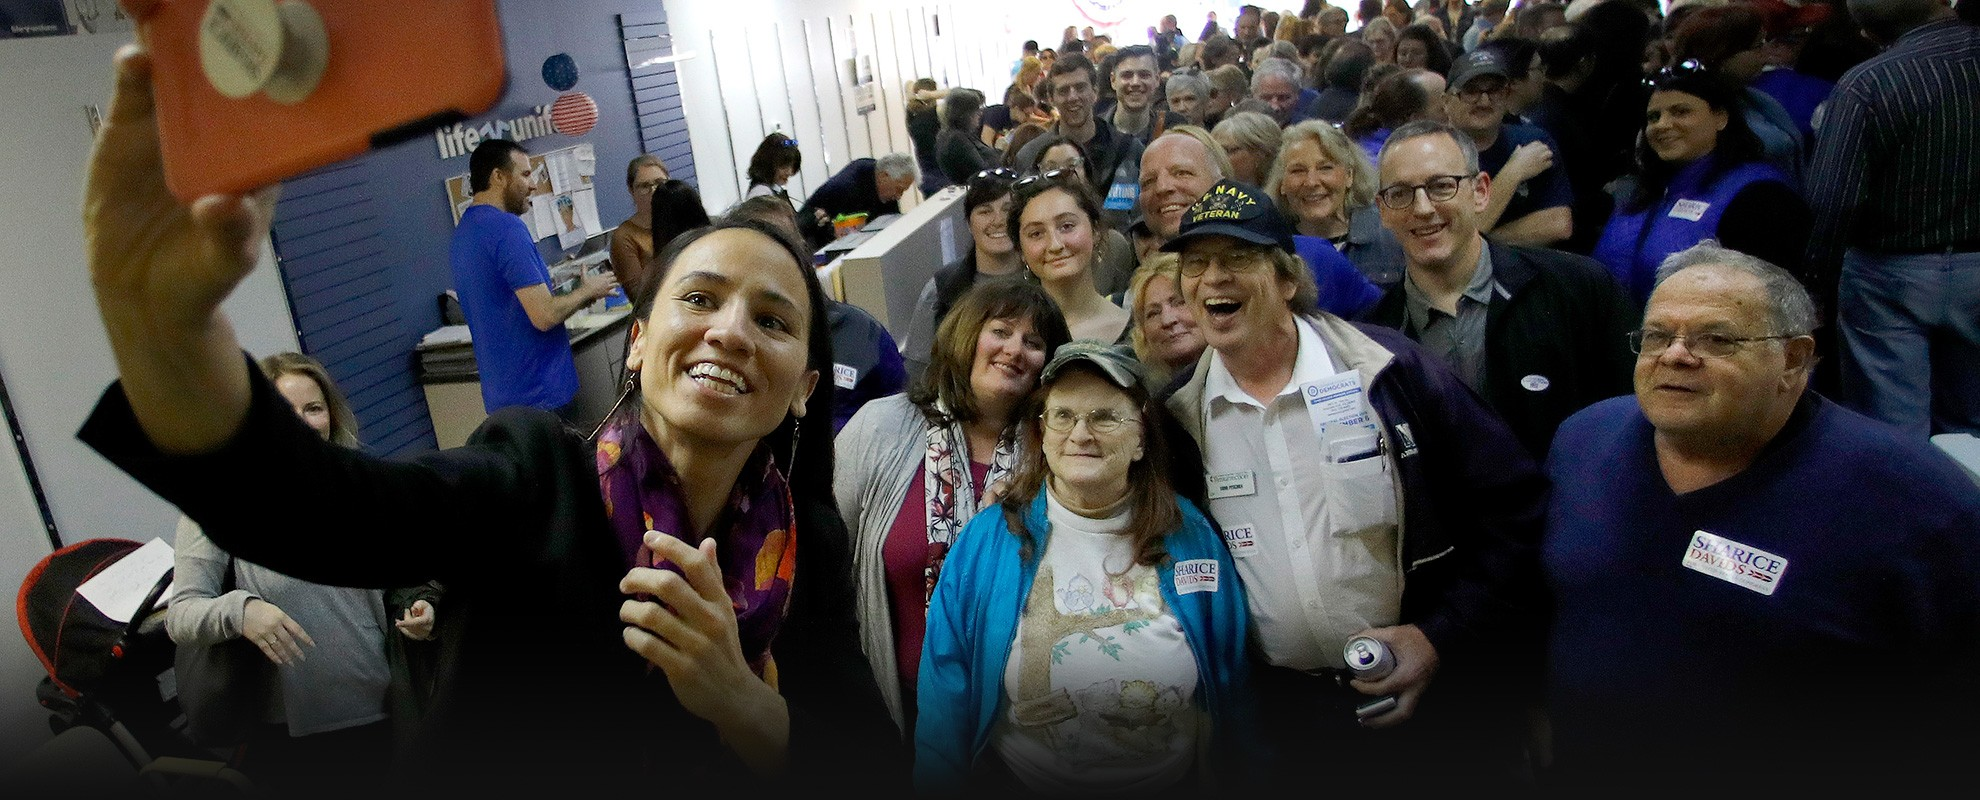 House candidate Sharice Davids takes a photo with supporters during a rally at her campaign office on Nov. 3, 2018, in Overland Park, Kan. Davids challenged Incumbent Republican U.S. Rep. Kevin Yoder for Kansas' 3rd Congressional District seat, and won he